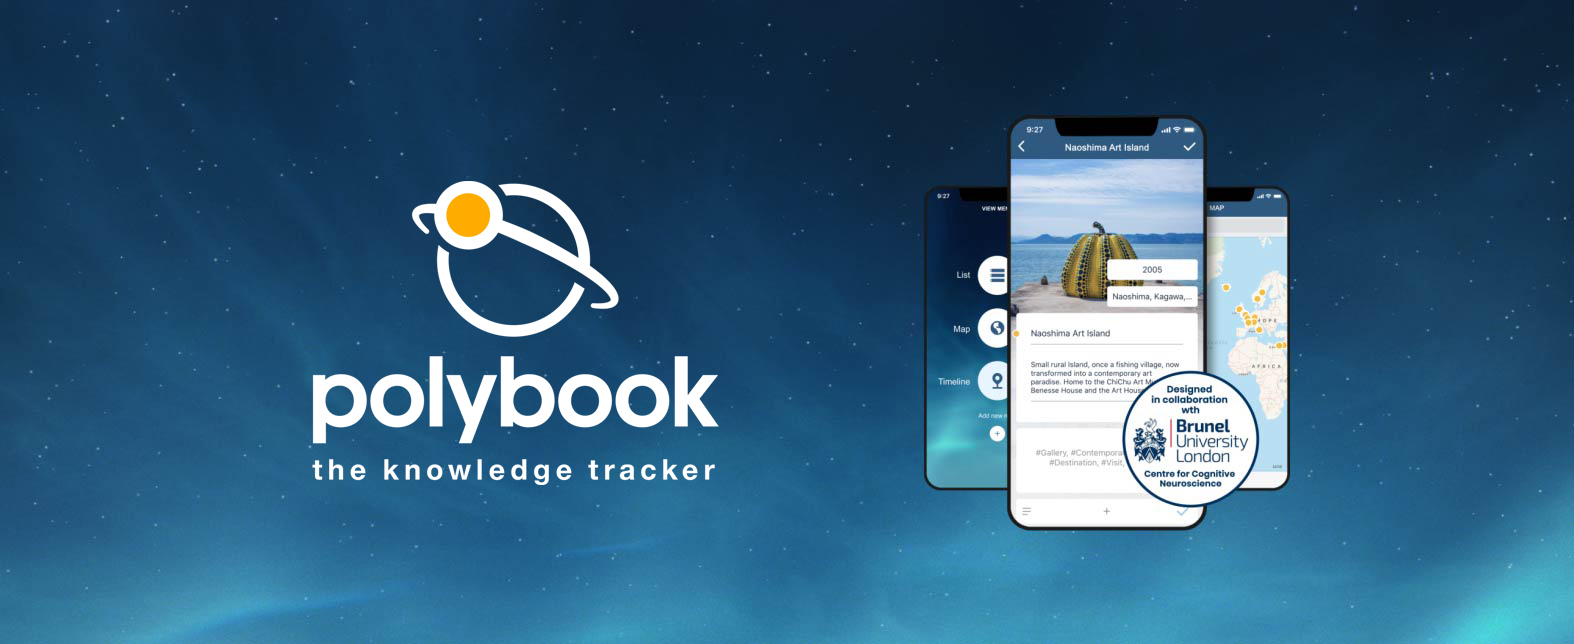 Polybook, Knowledge Tracker!